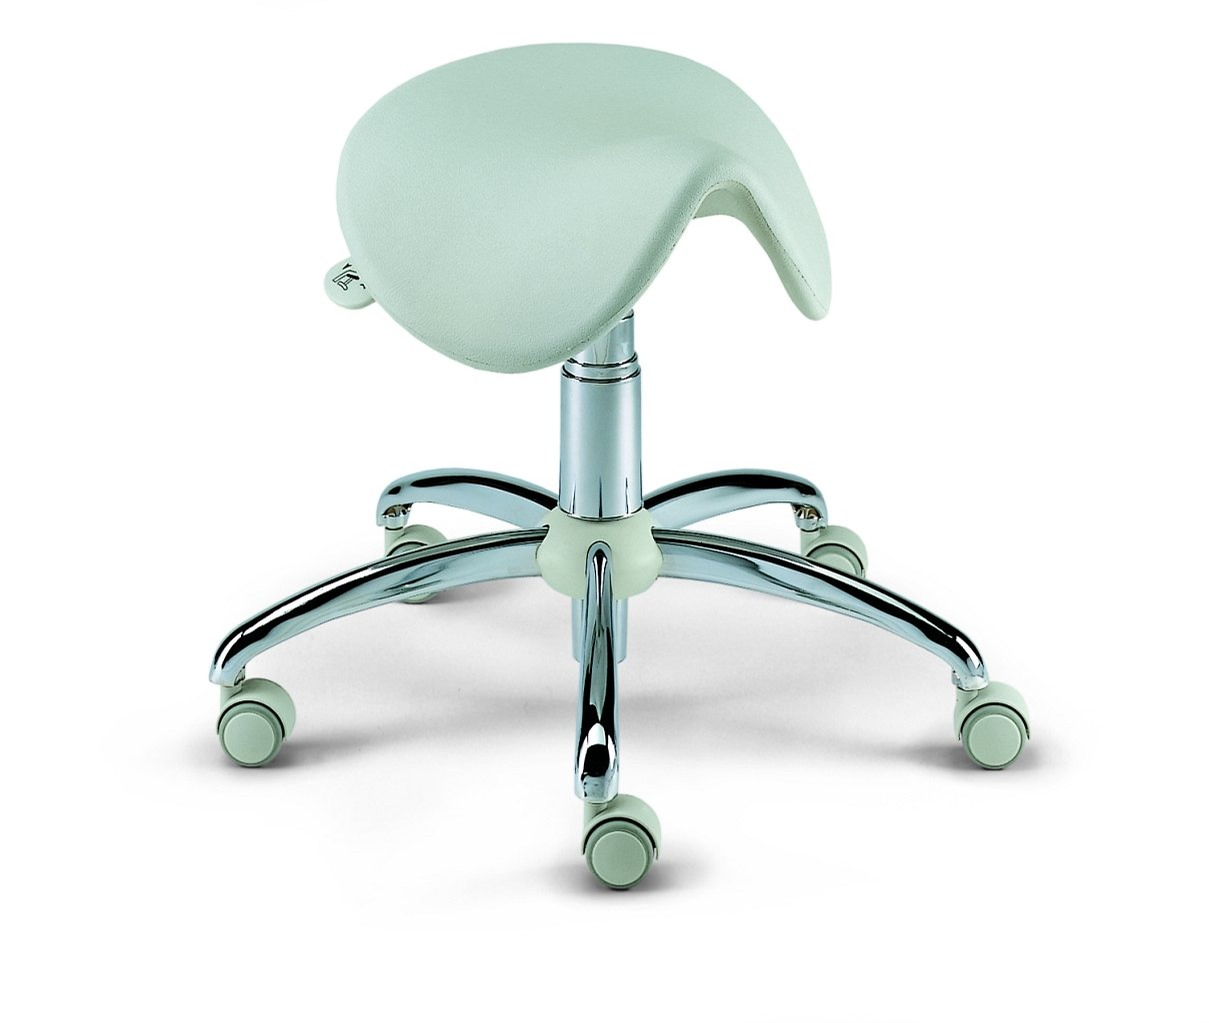 Promed Stools